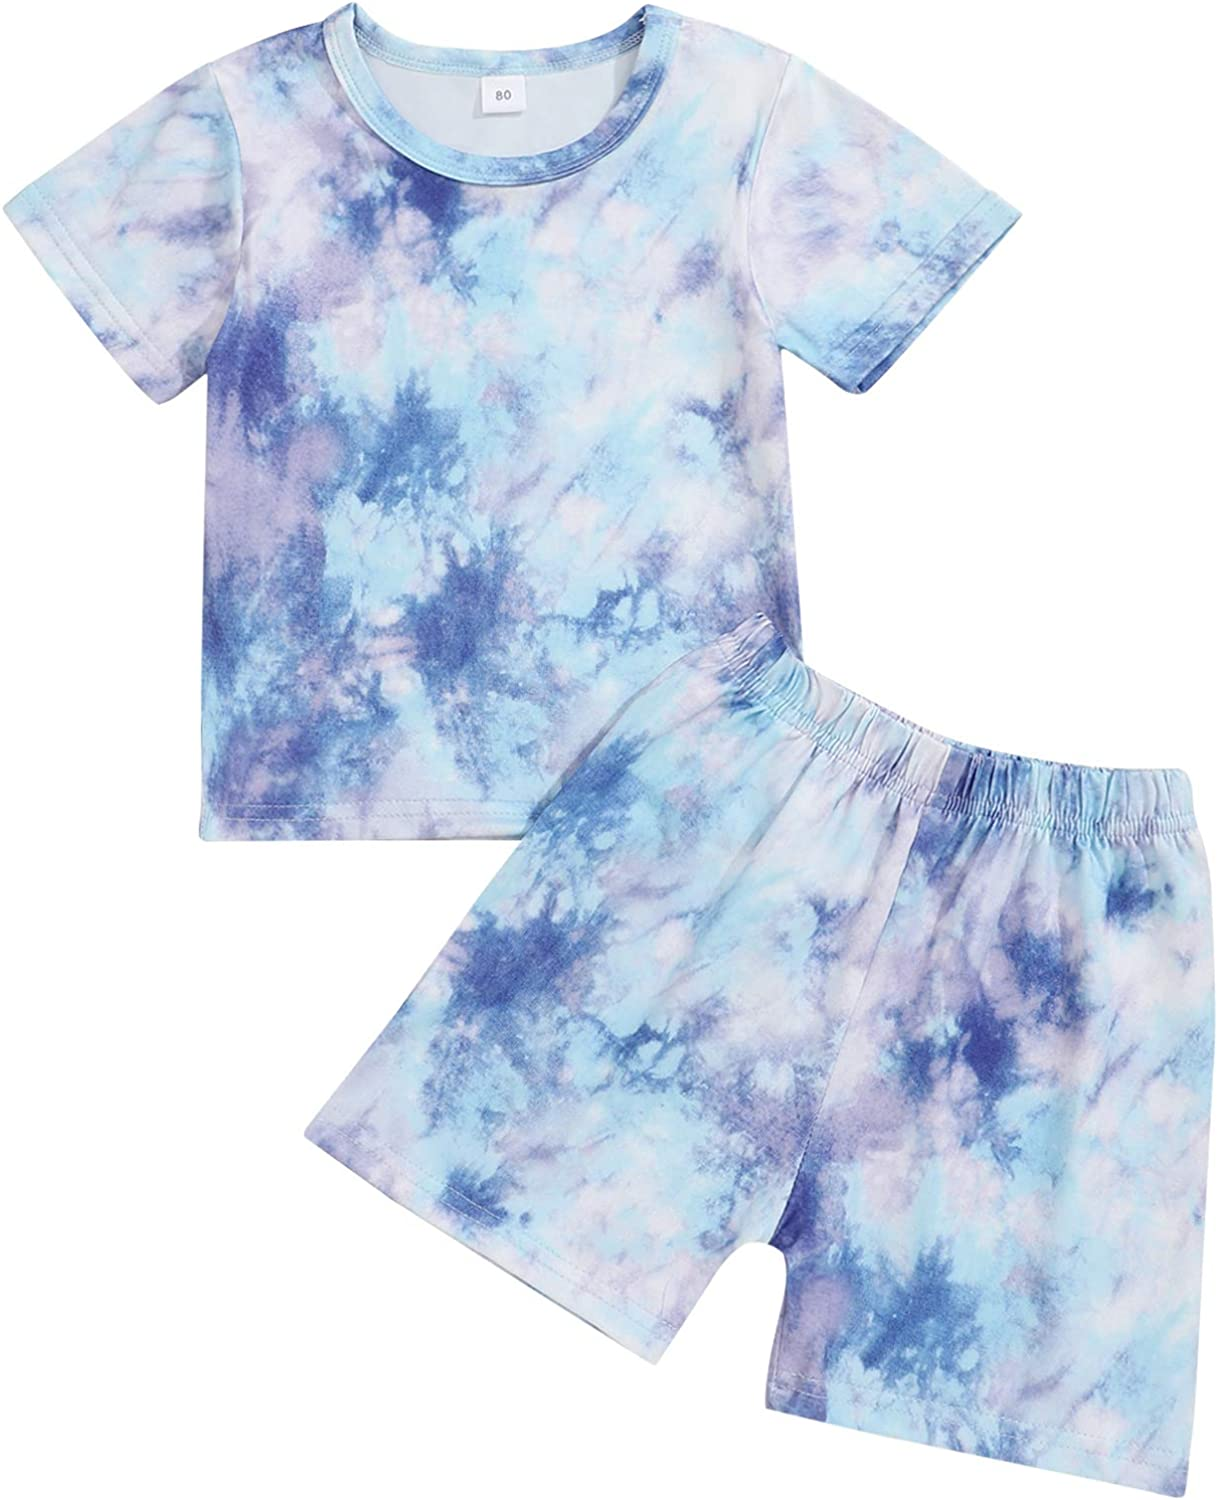 bilison Baby Girl Clothes Toddler Baby Tie Dye Sweatshirt+Long Pant Little Girl Outfit Sets